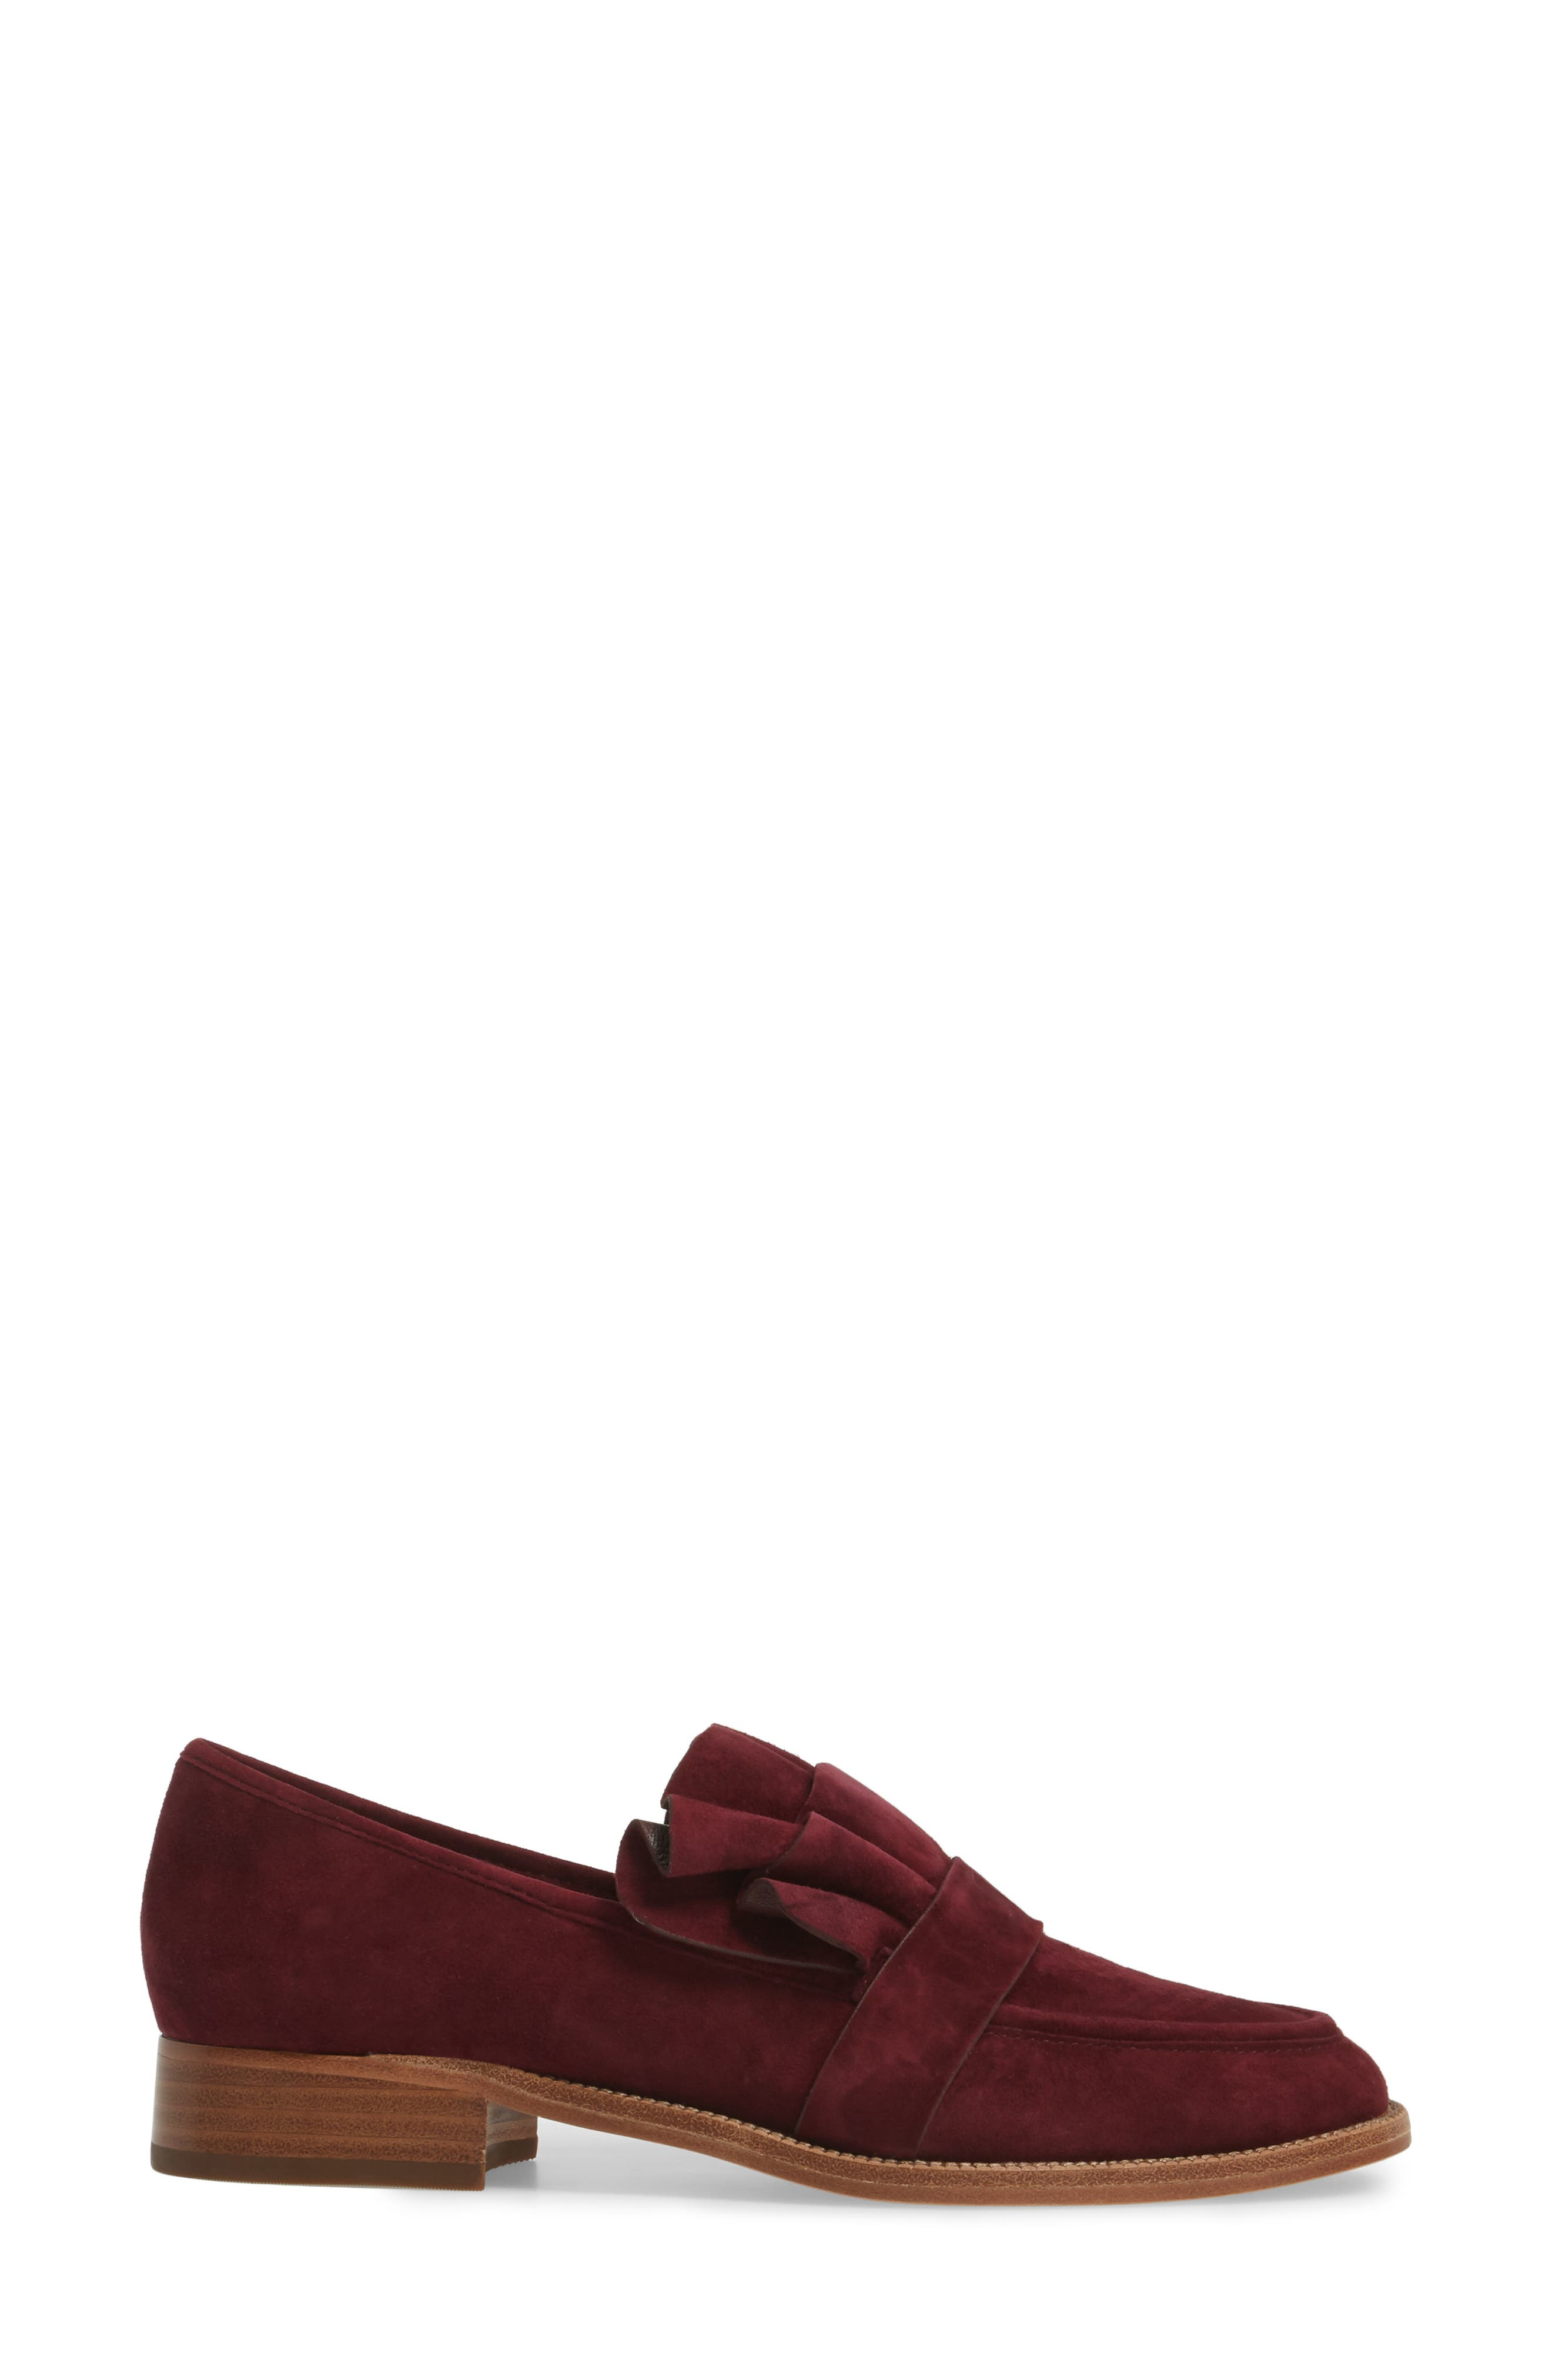 Tenley Ruffled Loafer,                             Alternate thumbnail 3, color,                             930